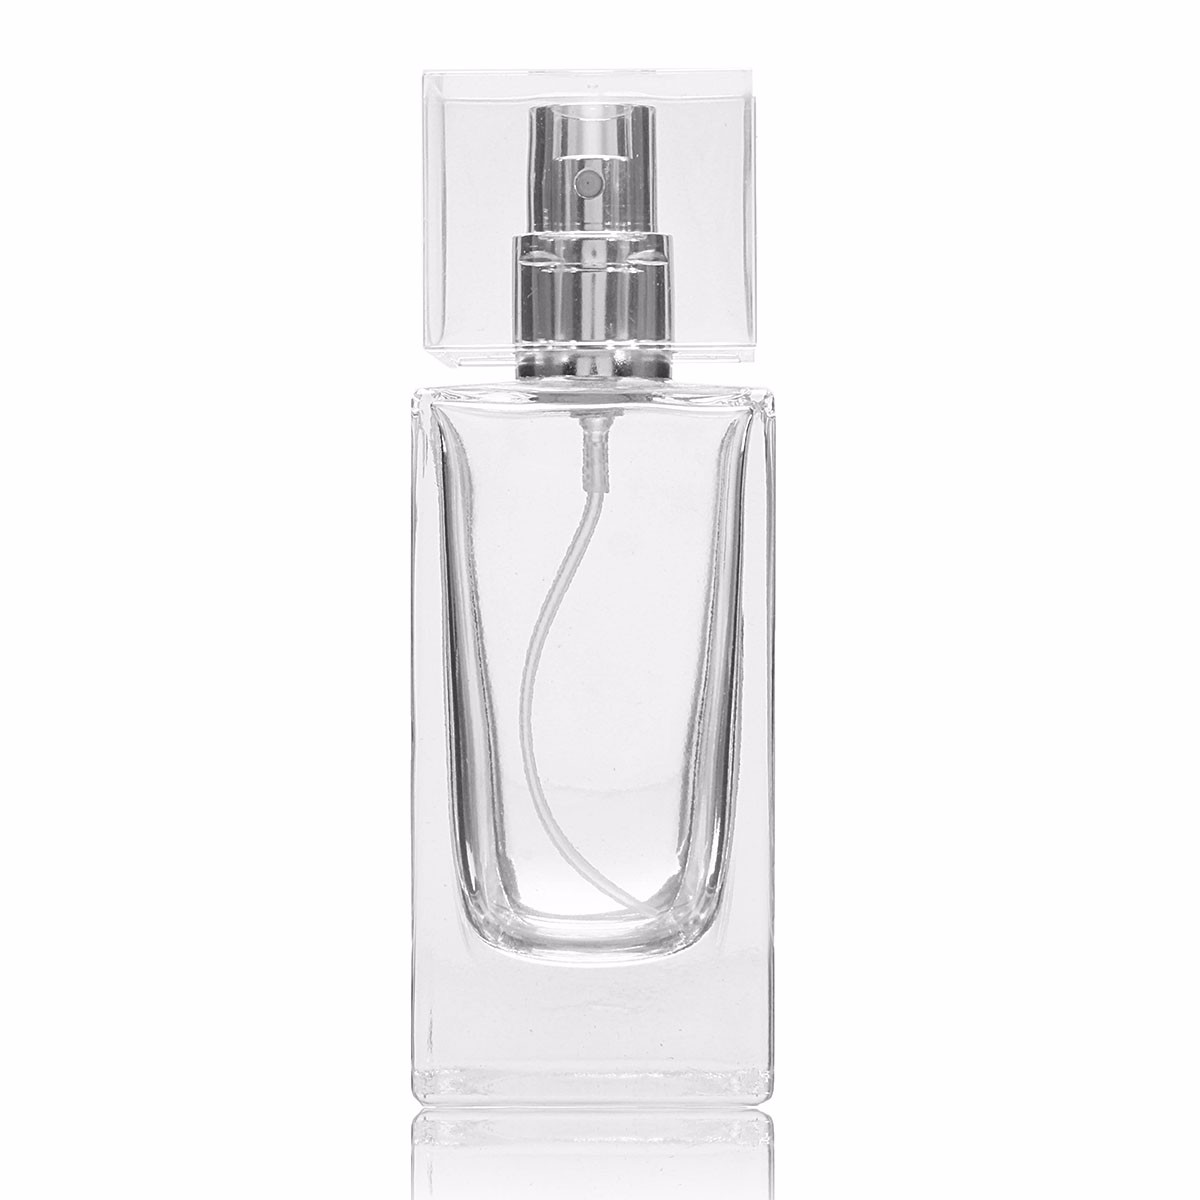 Refillable Empty Perfume Spray Container Bottle Glass F